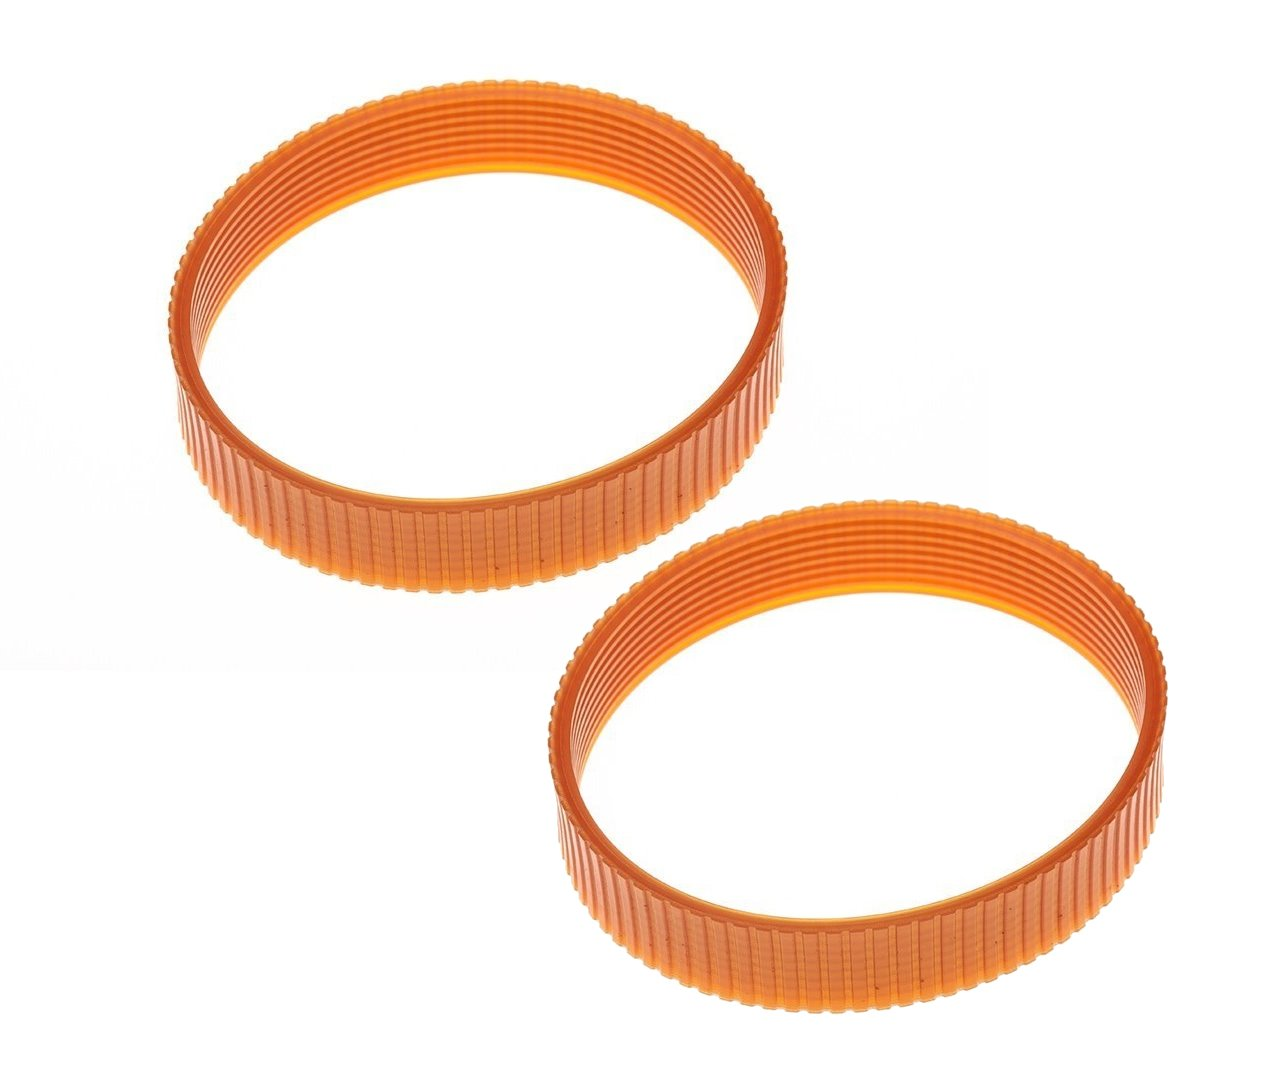 2 Pack Planer Replacement Drive Belt 429962-08 for DeWalt DW734 DW734R Planer - 9 Ribs by JTEX (Image #1)